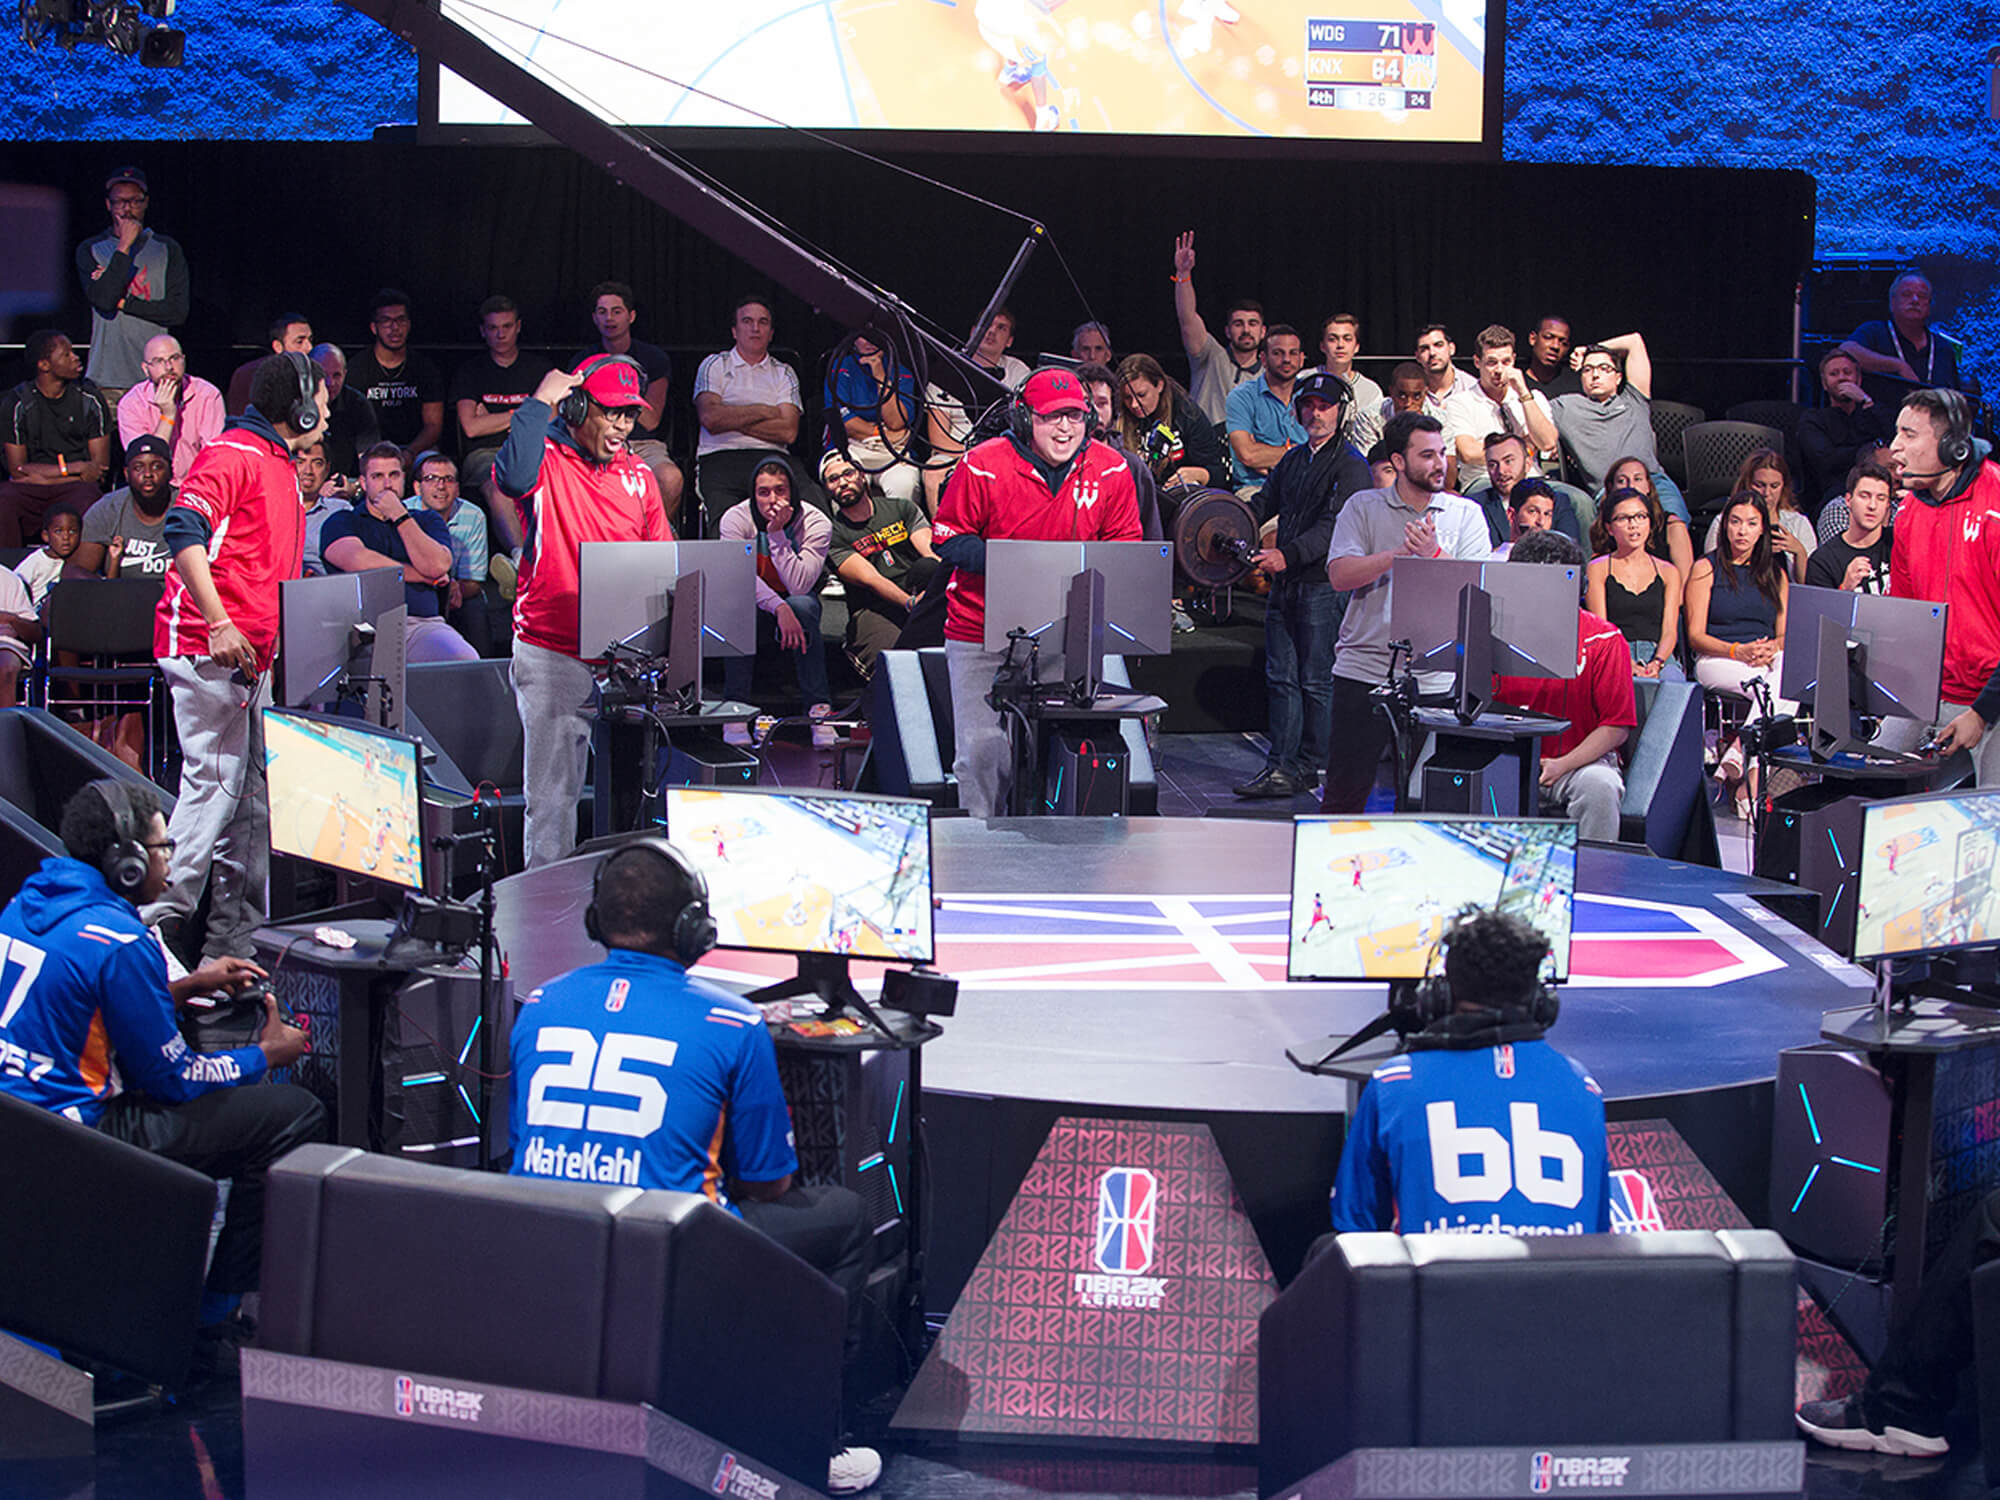 Traditional Sports Continue Dive Into Esports As 2K League Begins - Sports Business Daily